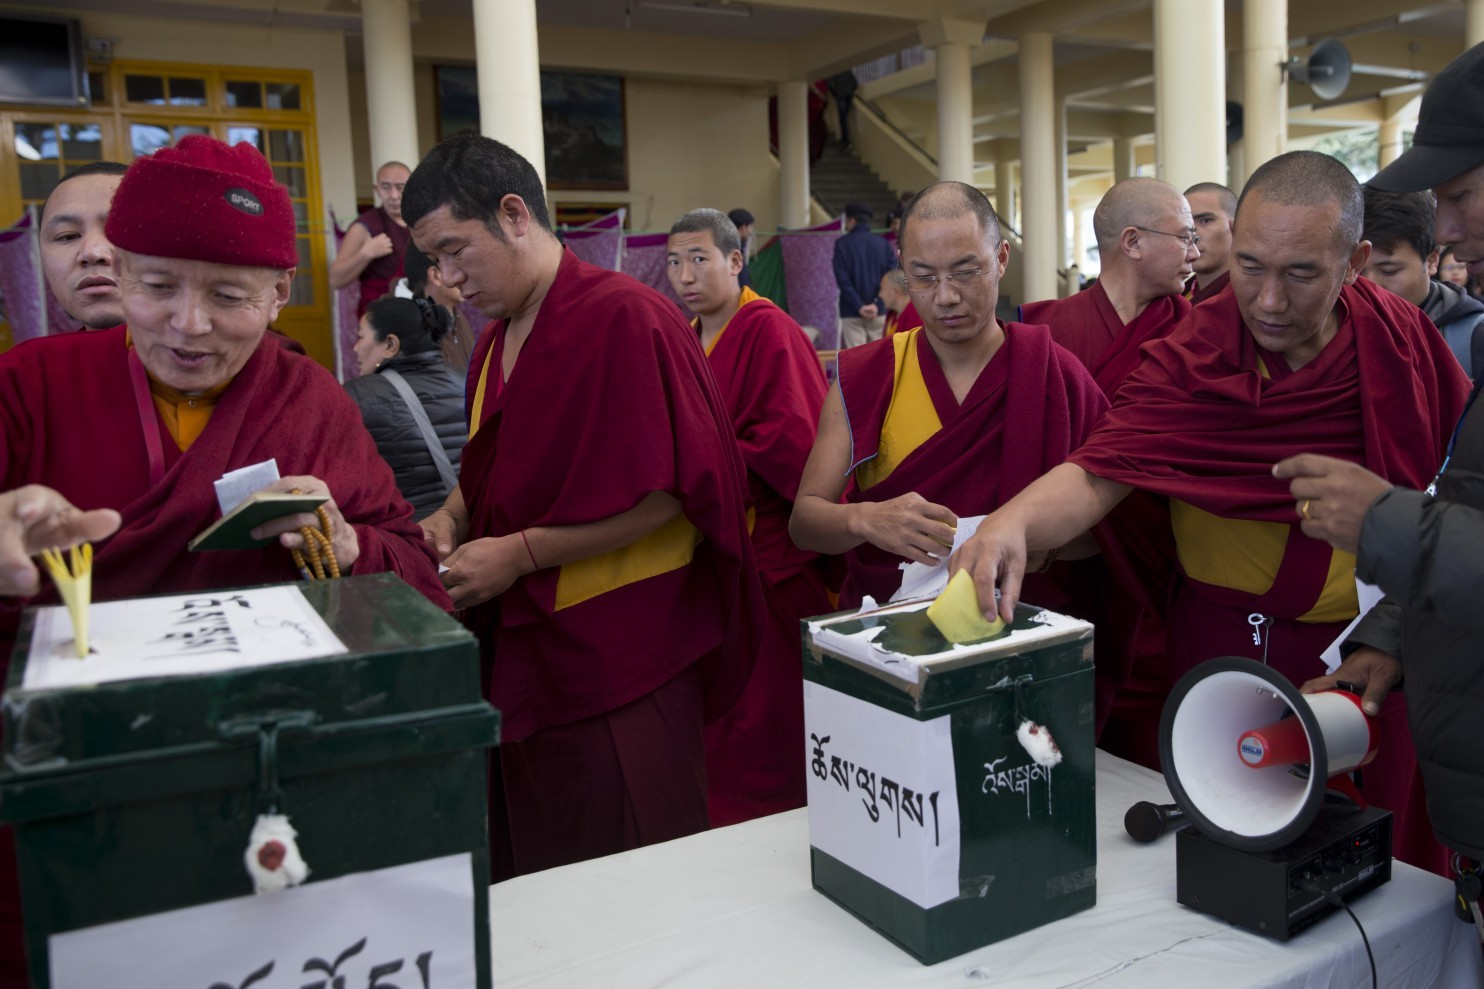 Tibetan election in India. (Photo courtesy: Asianews.it)